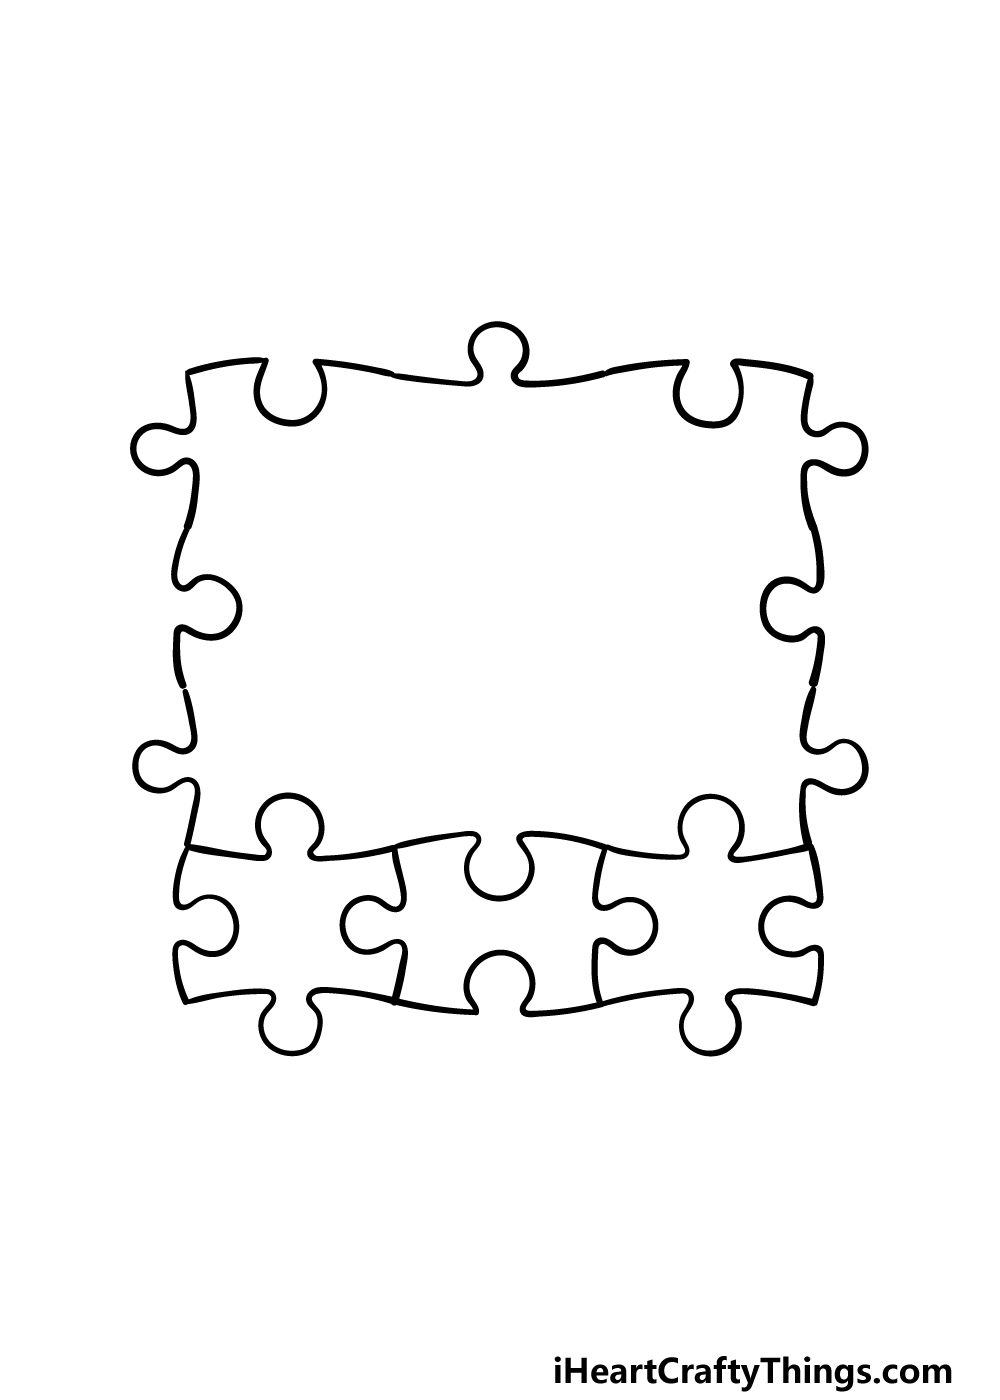 how to draw Puzzle Pieces step 3